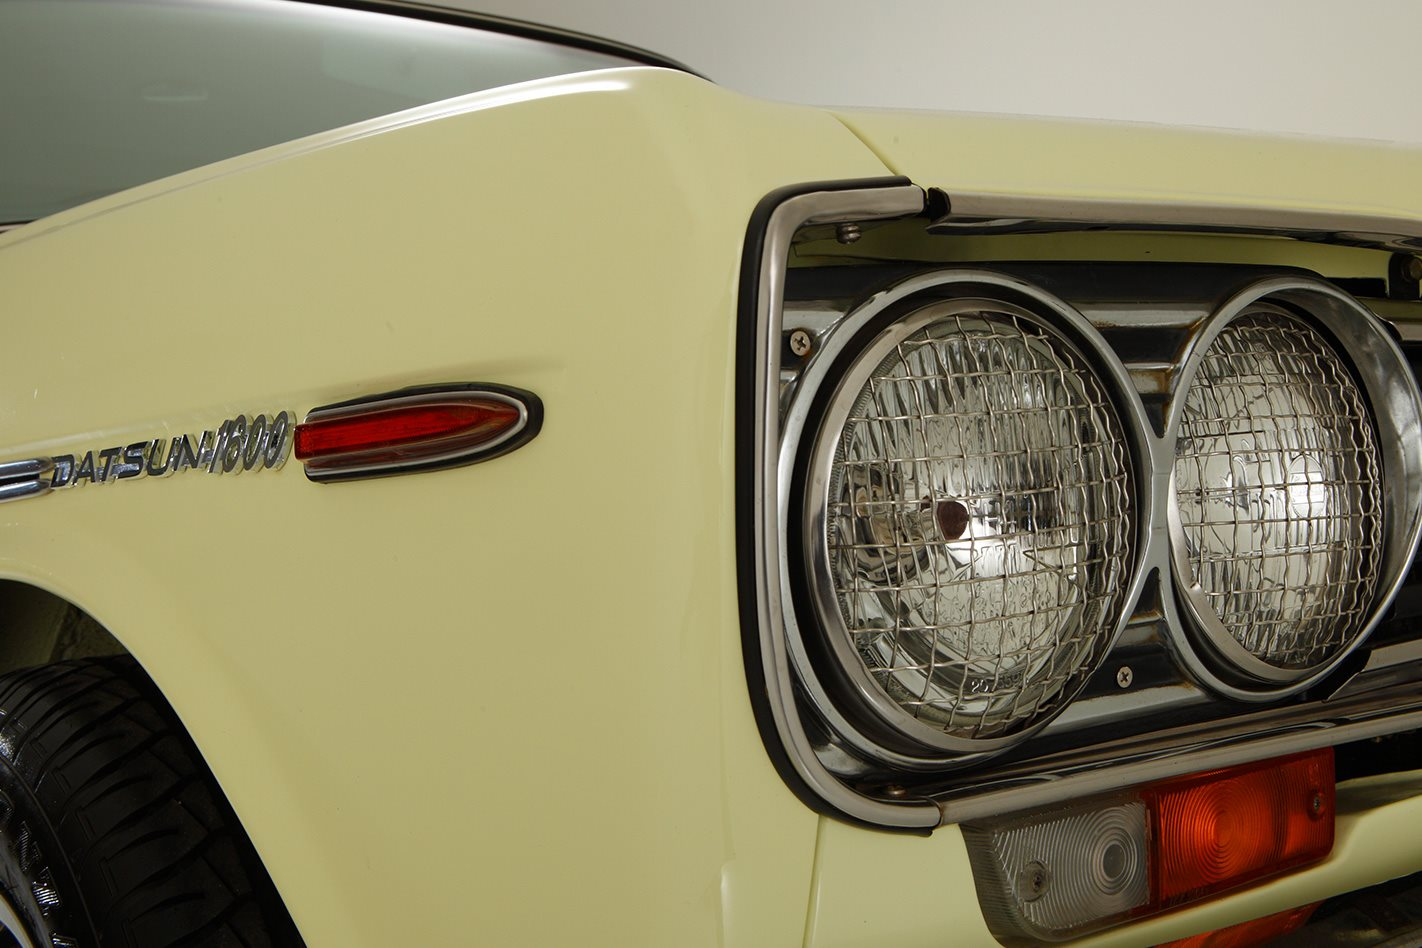 Datsun 1600 legend series headlights